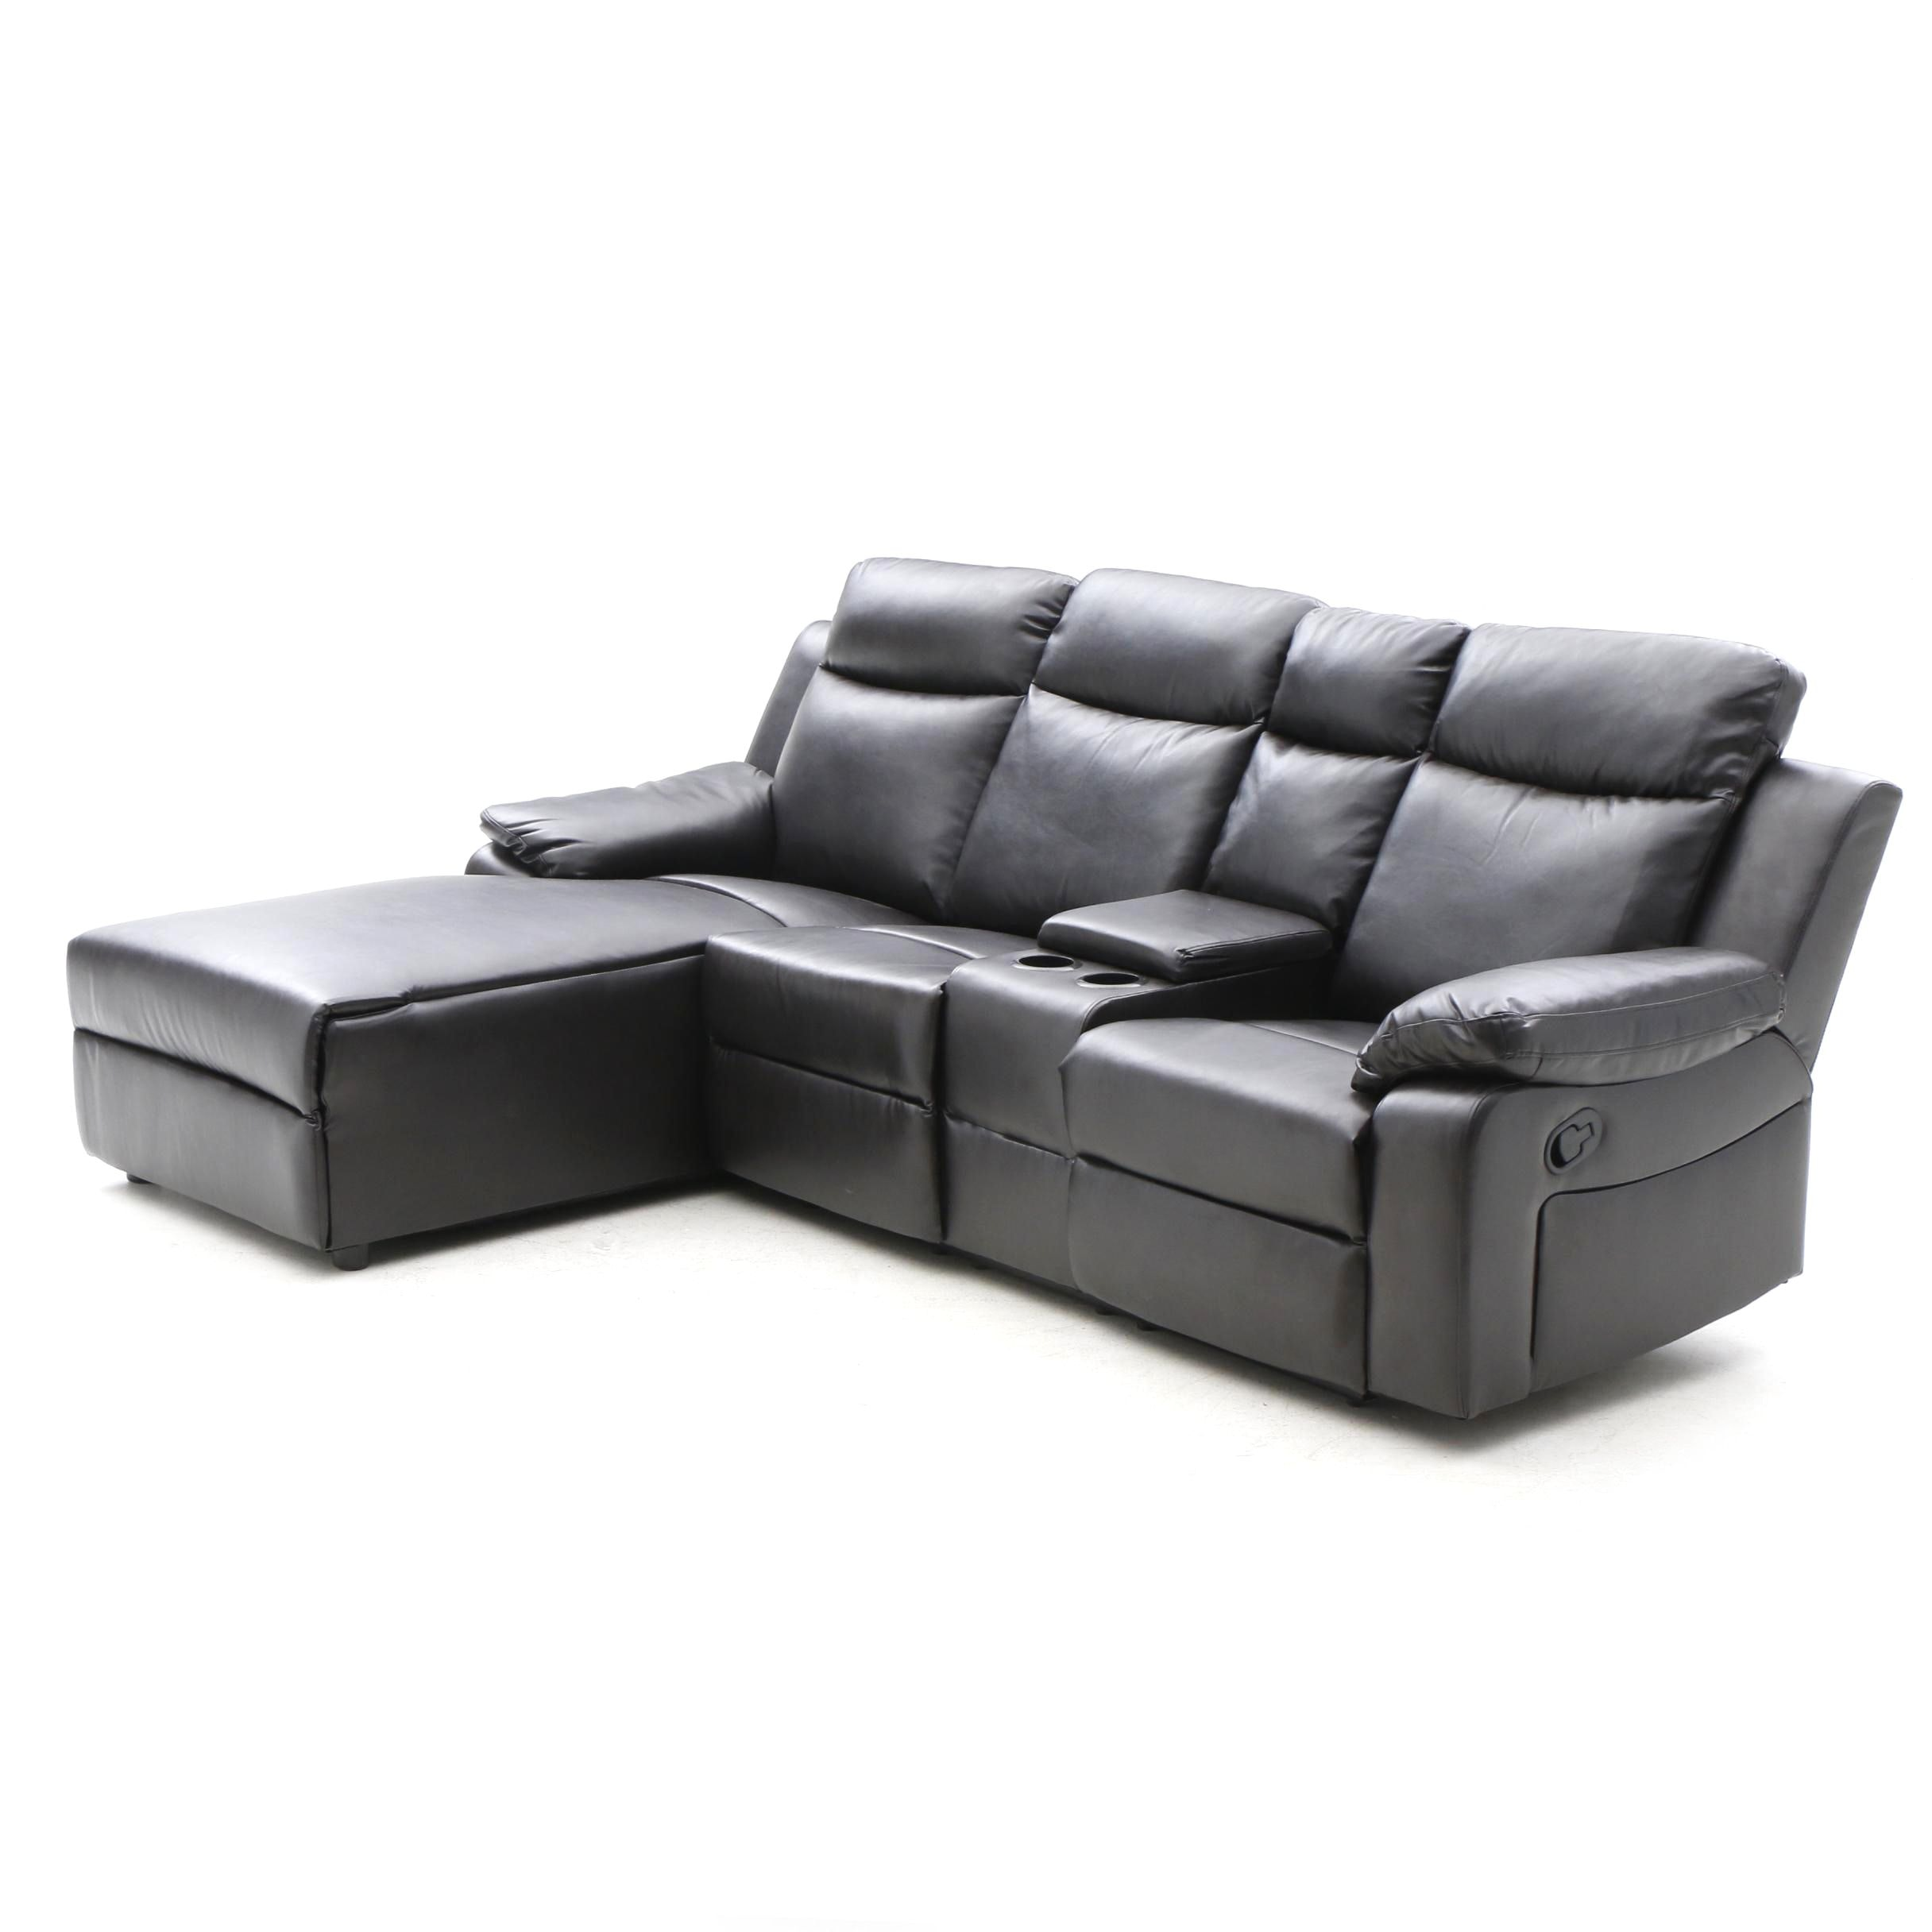 Theater Seating with Chaise Lounge in Black Faux Leather